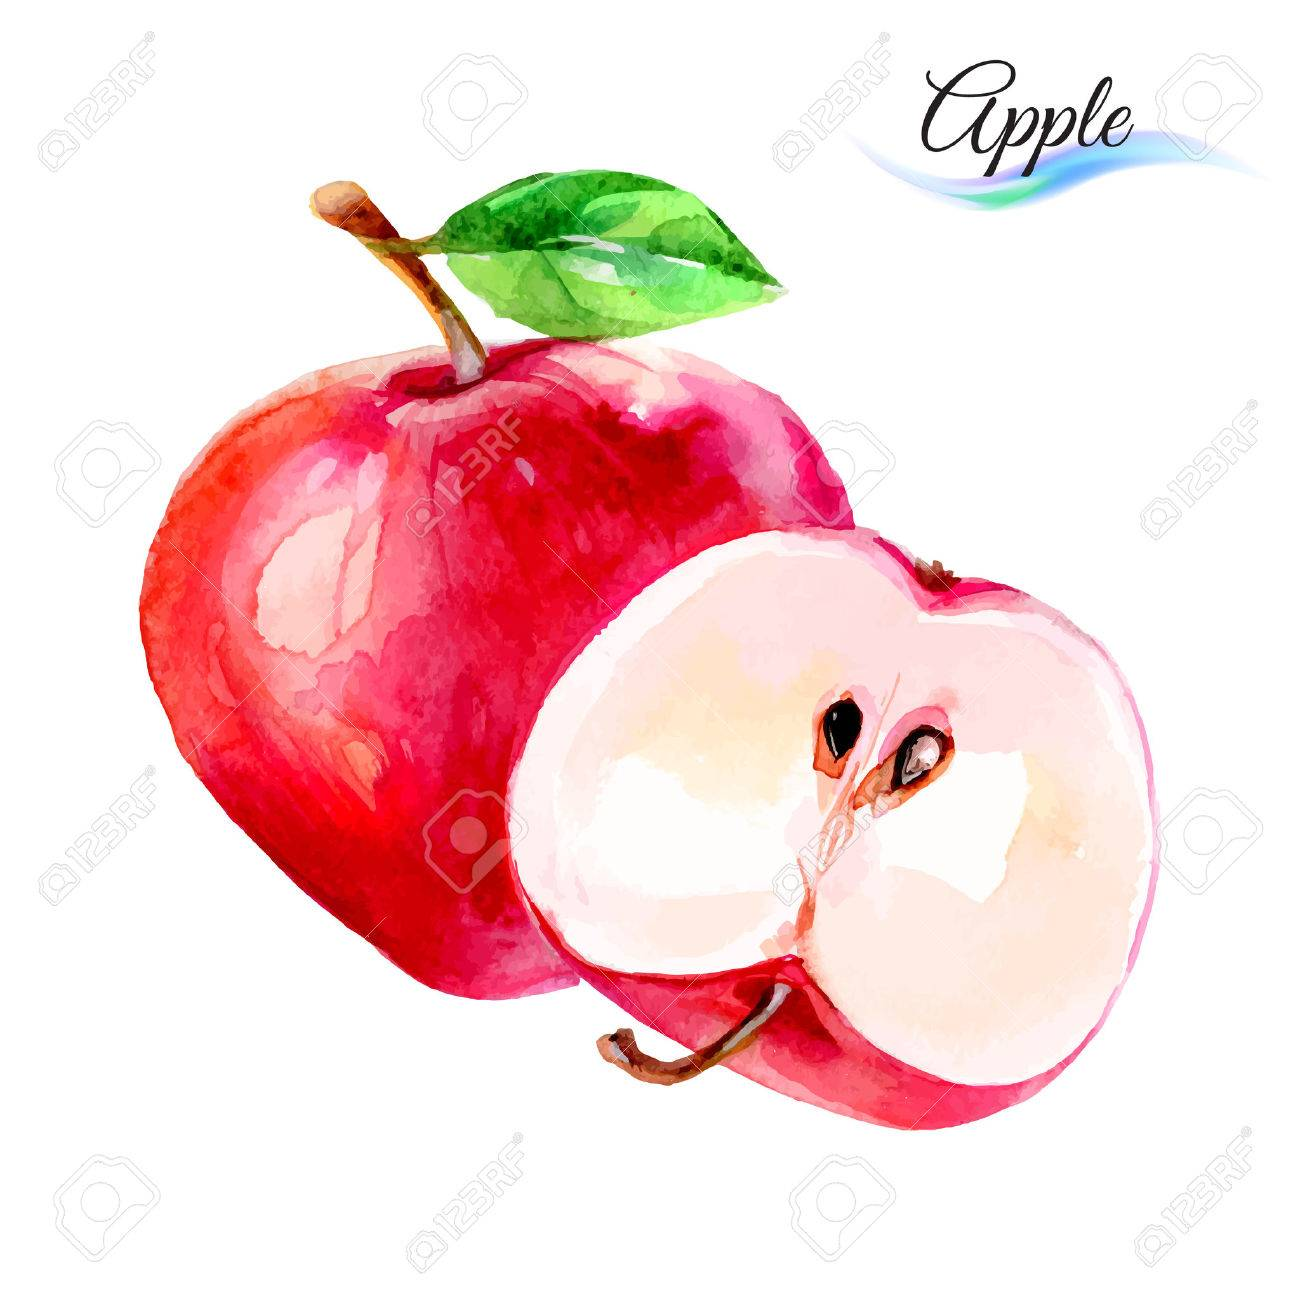 Apple drawing watercolor isolated on white background Stock Vector - 40865744